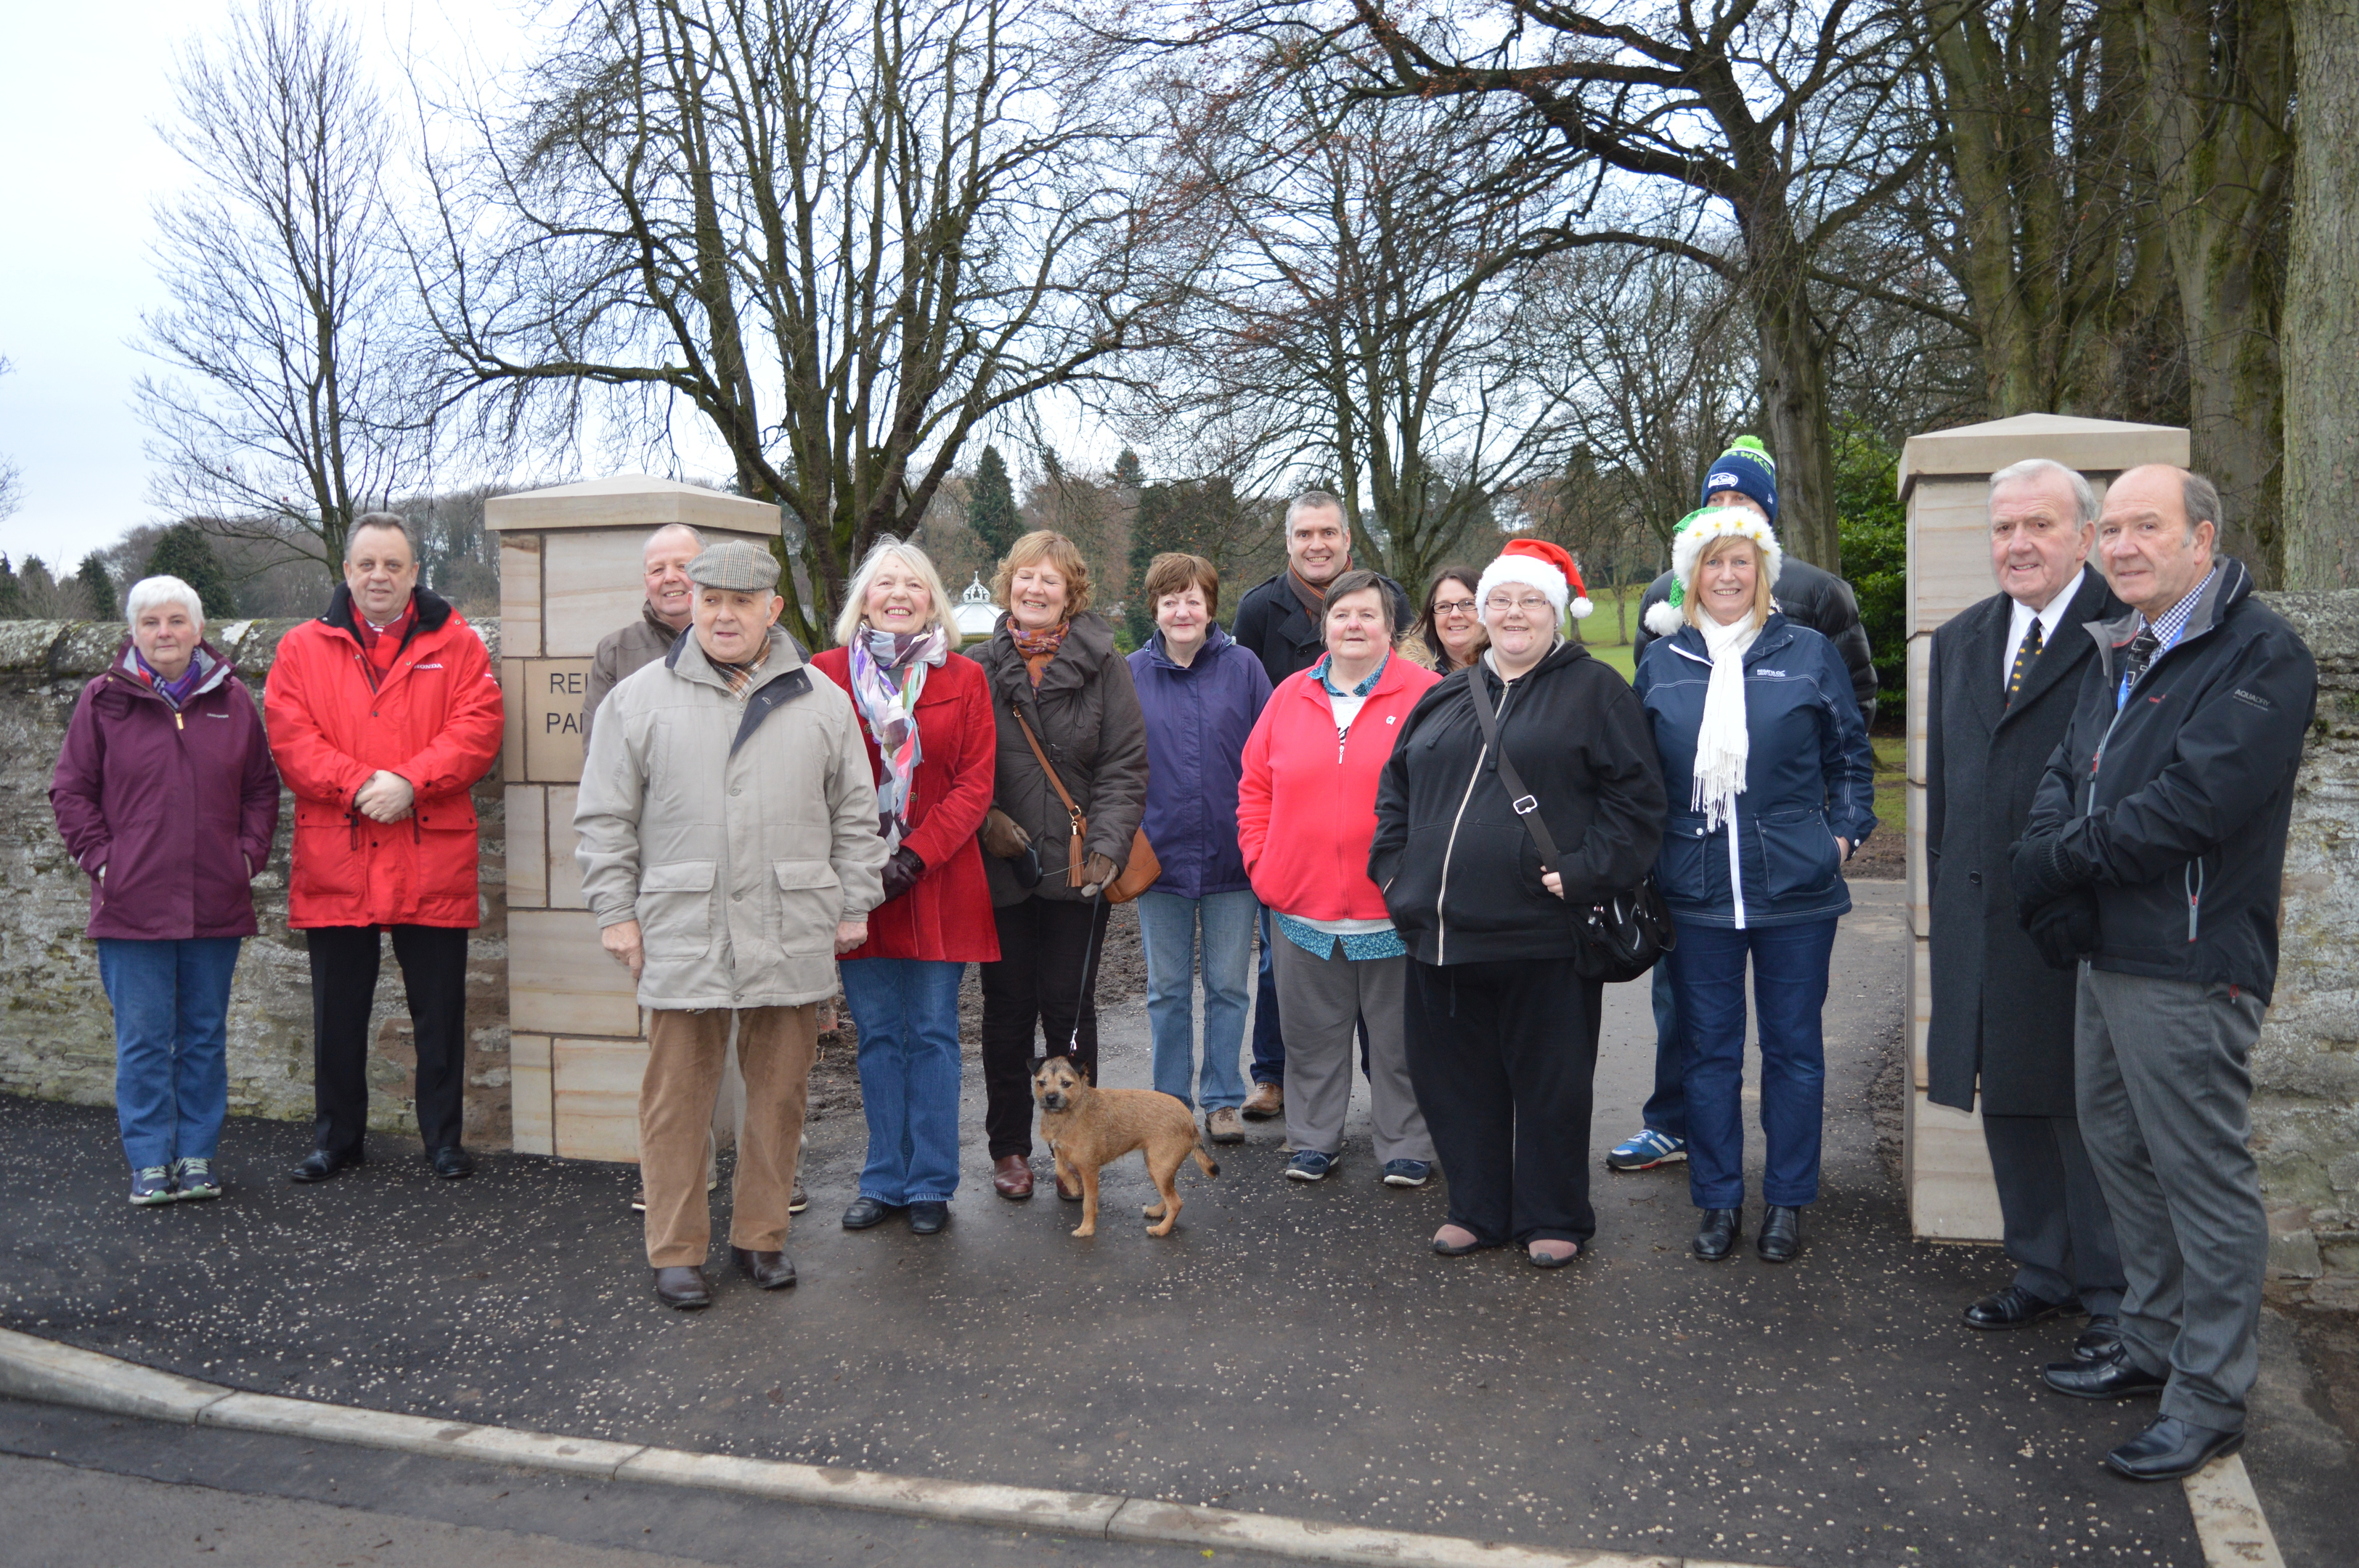 Councillors and local residents gather to inspect the scheme's progress